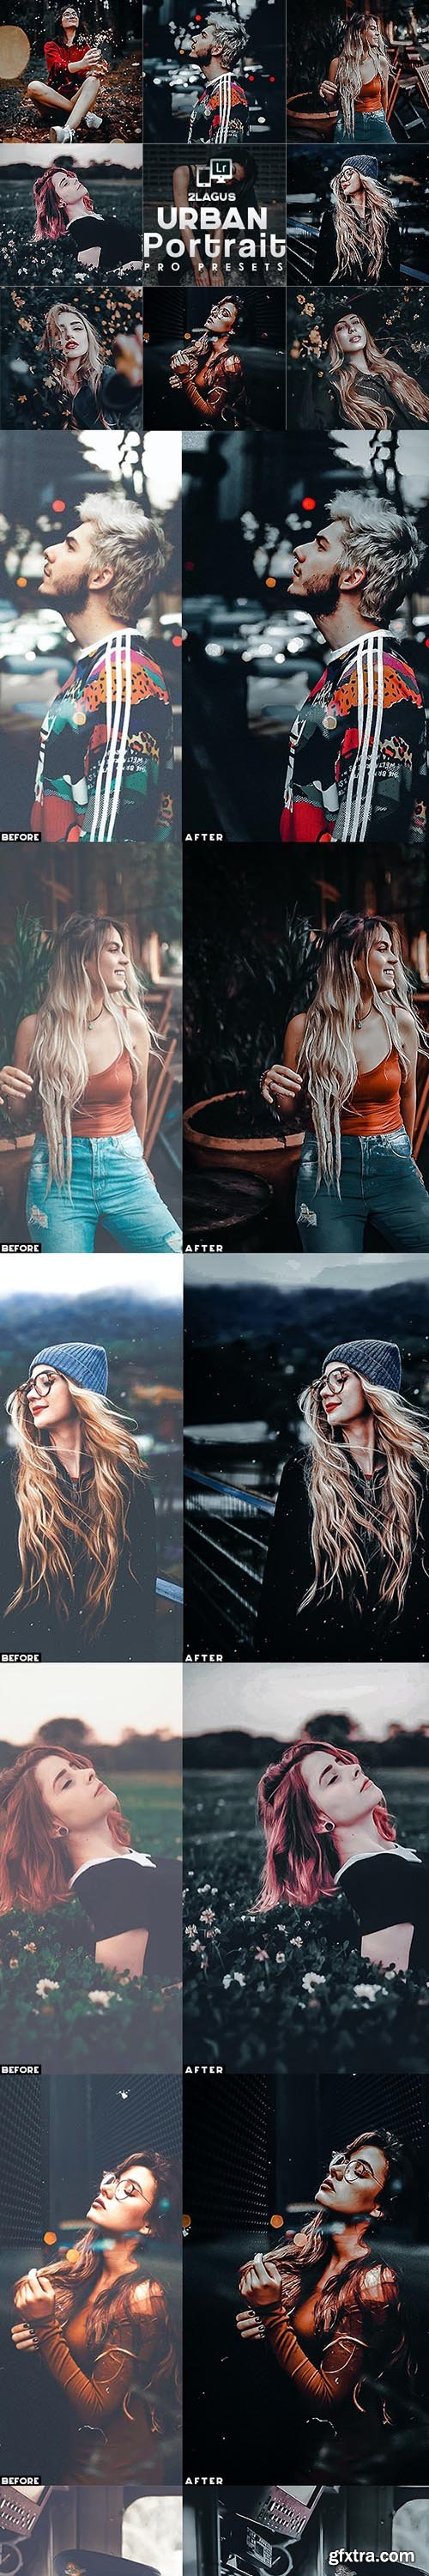 GraphicRiver - Urban Portrait Photoshop Actions 27395052